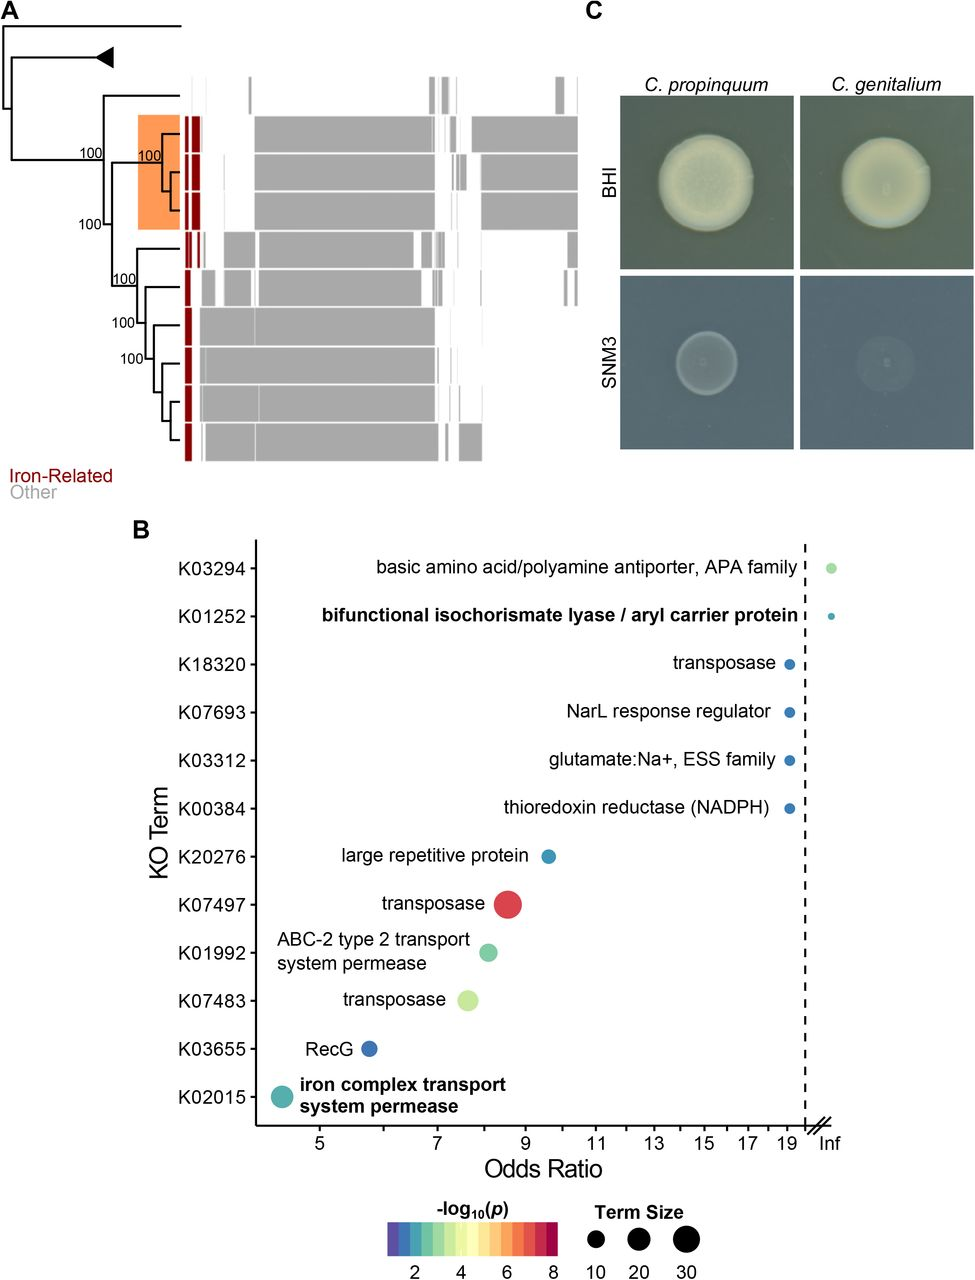 Bacterial competition mediated by siderophore production among the